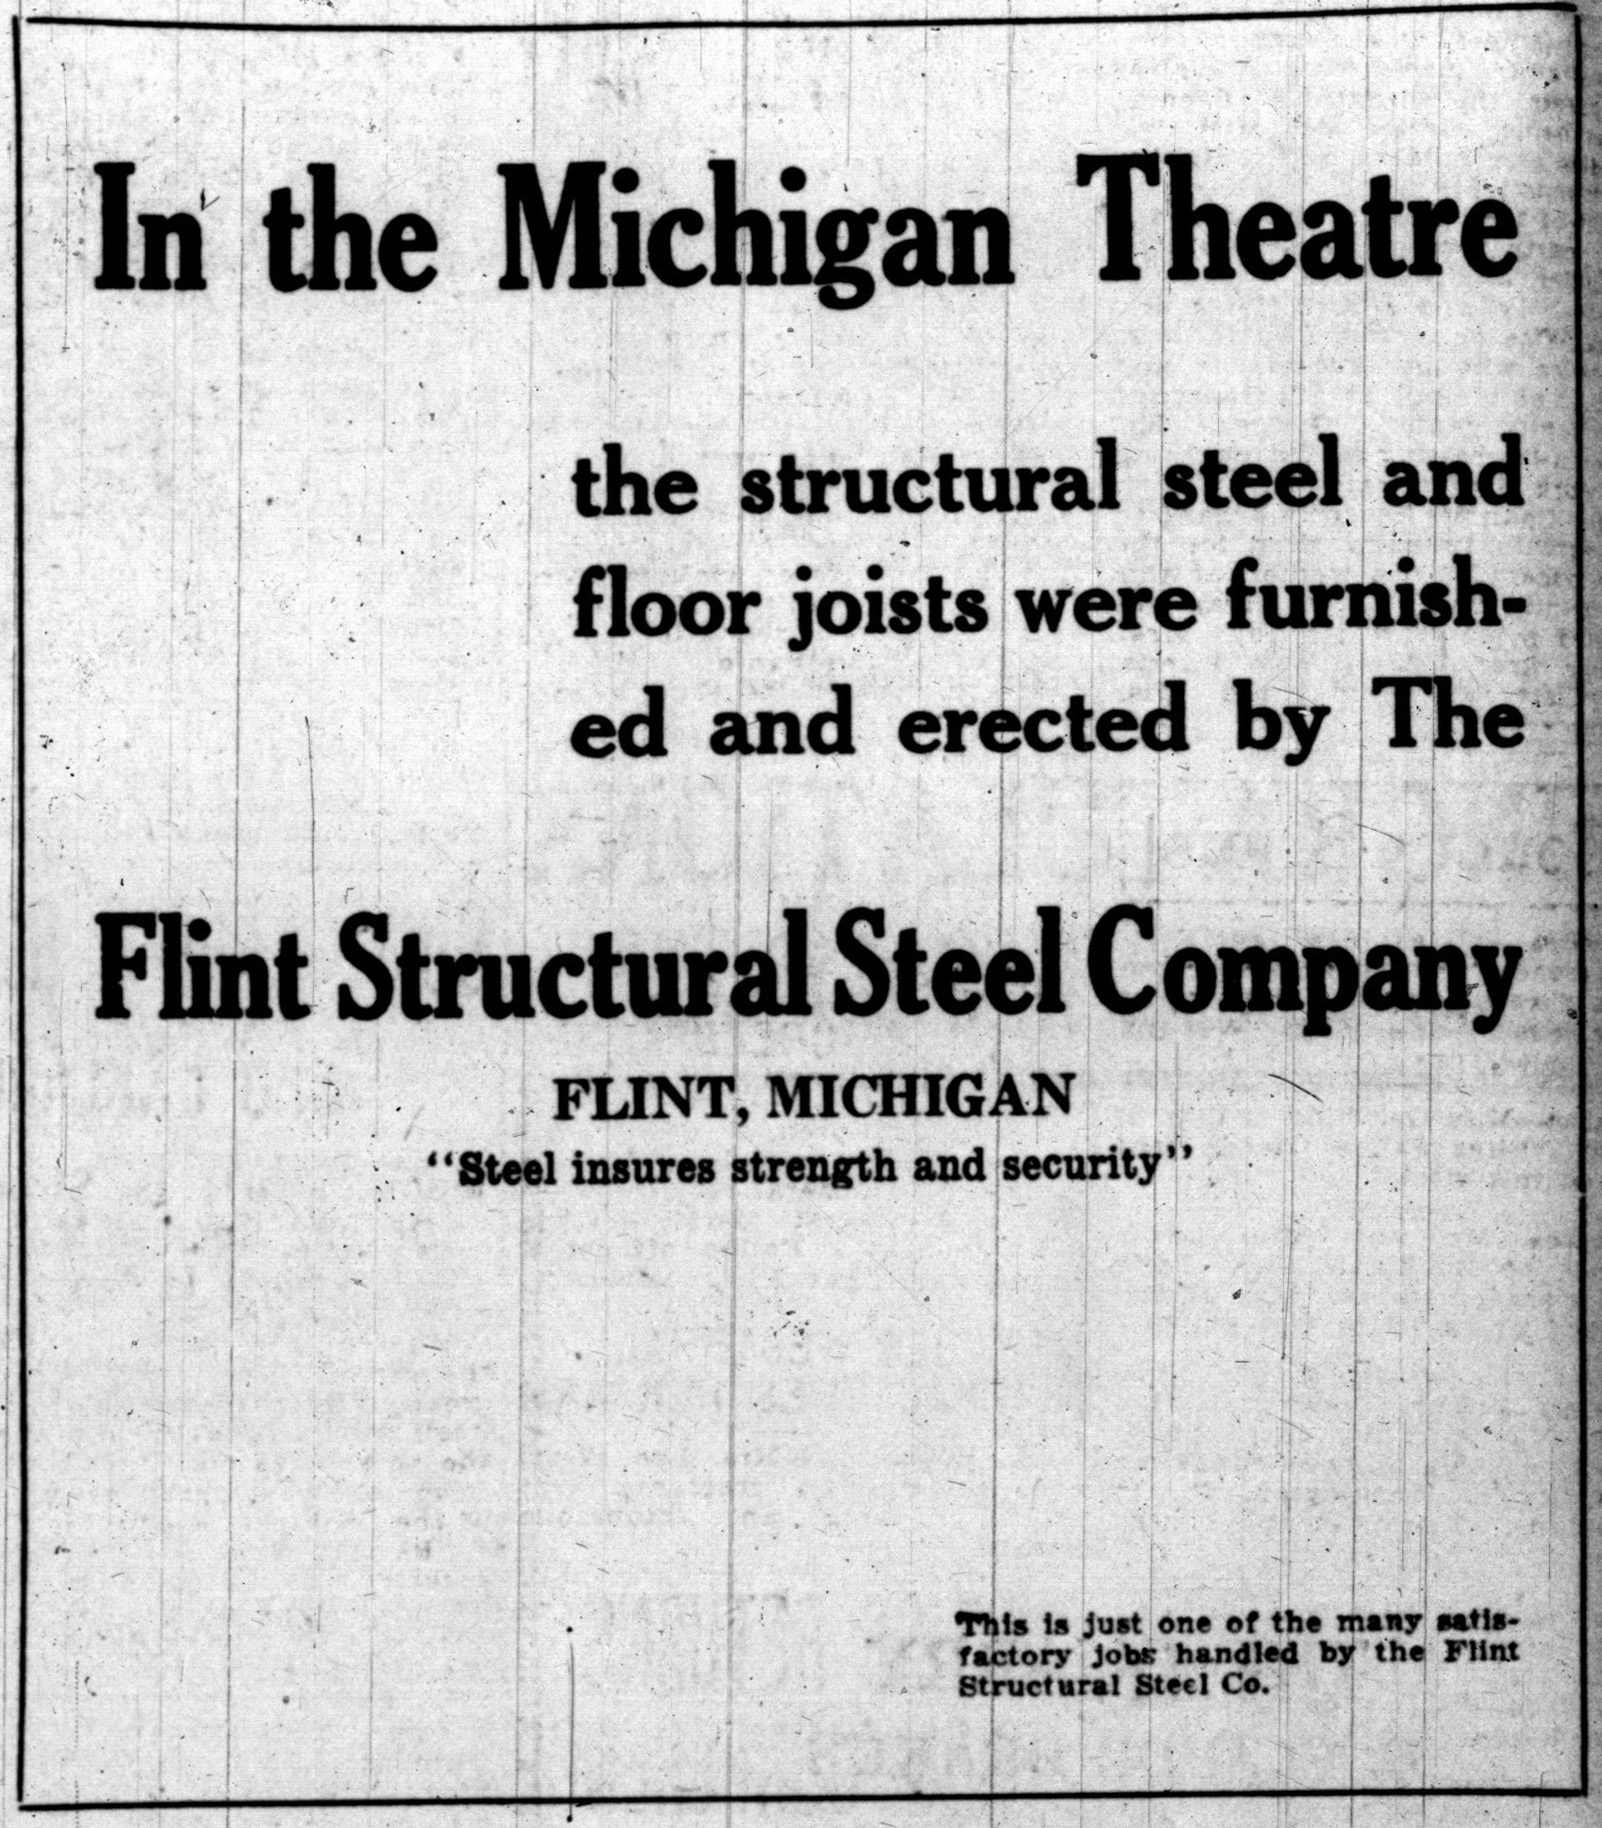 Flint Structural Steel Company [advertisement] image